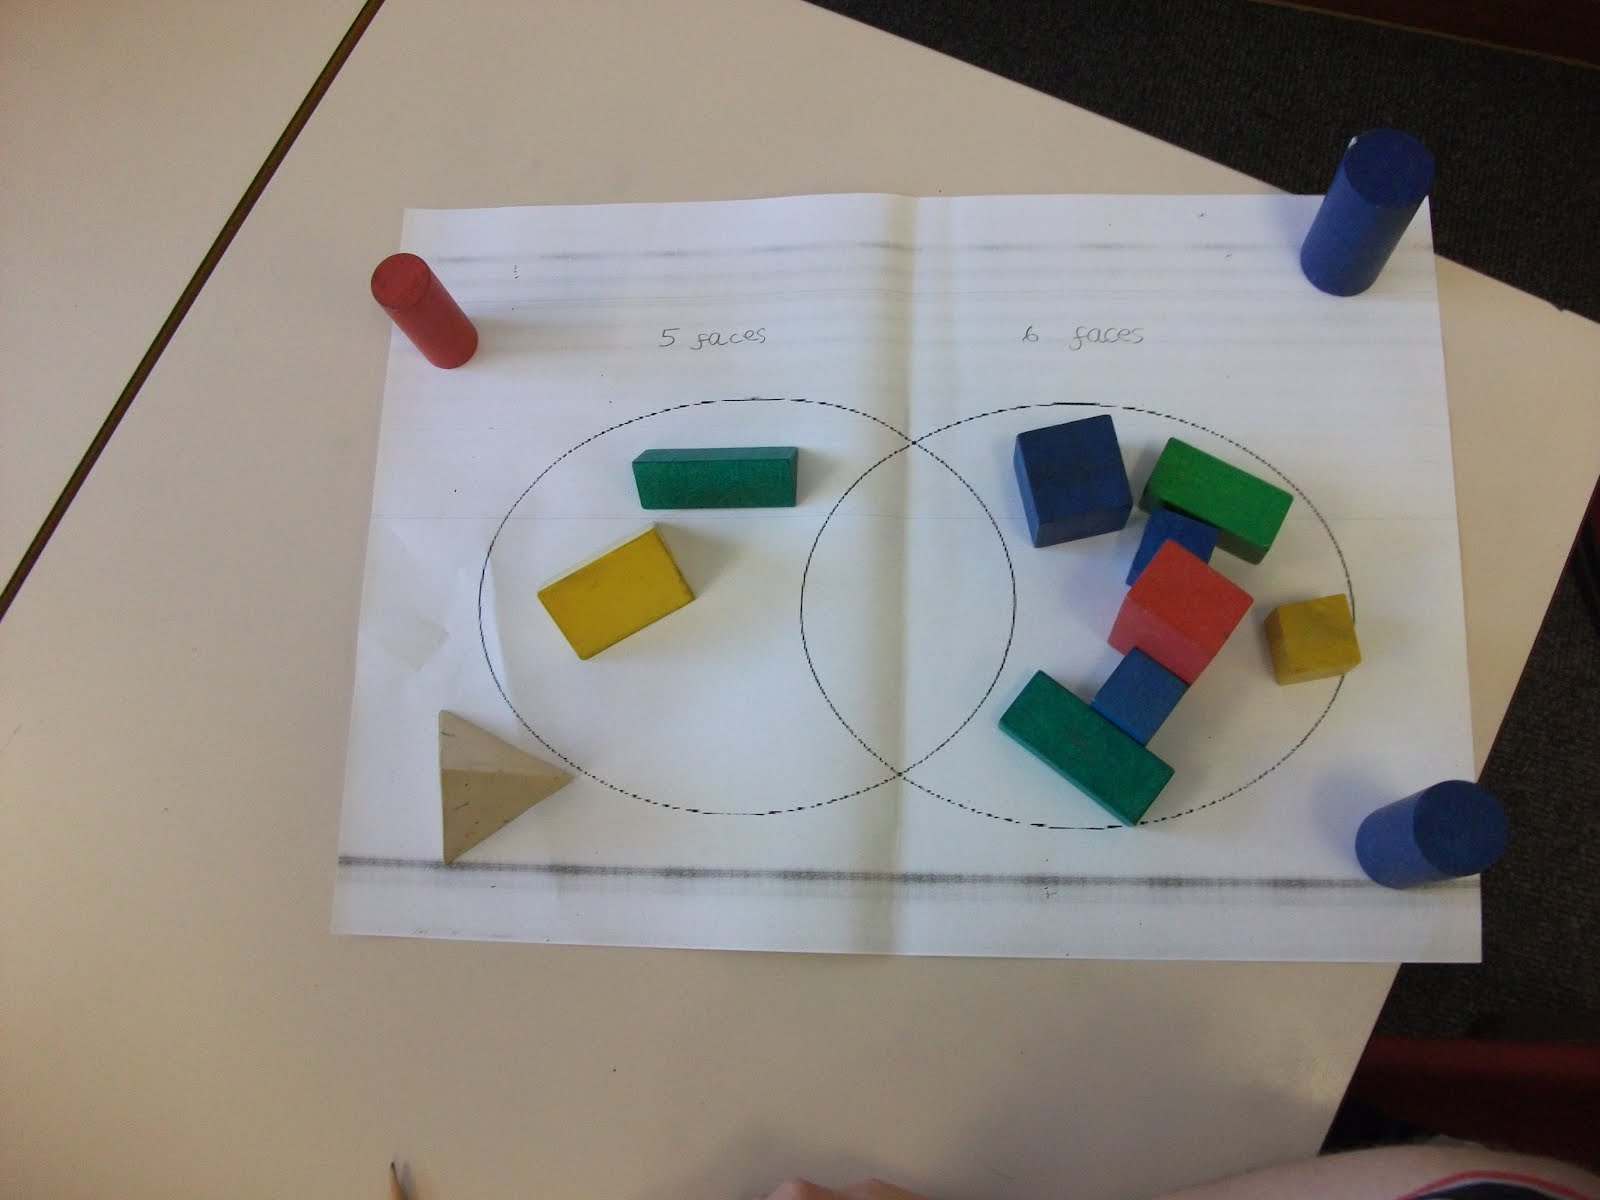 3d shape venn diagram criteria wiring diagram for light switch year 3 holy souls catholic primary school today in maths we sorted rh year3holysoulsbham blogspot com horizontal color venn two and three dimensional ccuart Choice Image